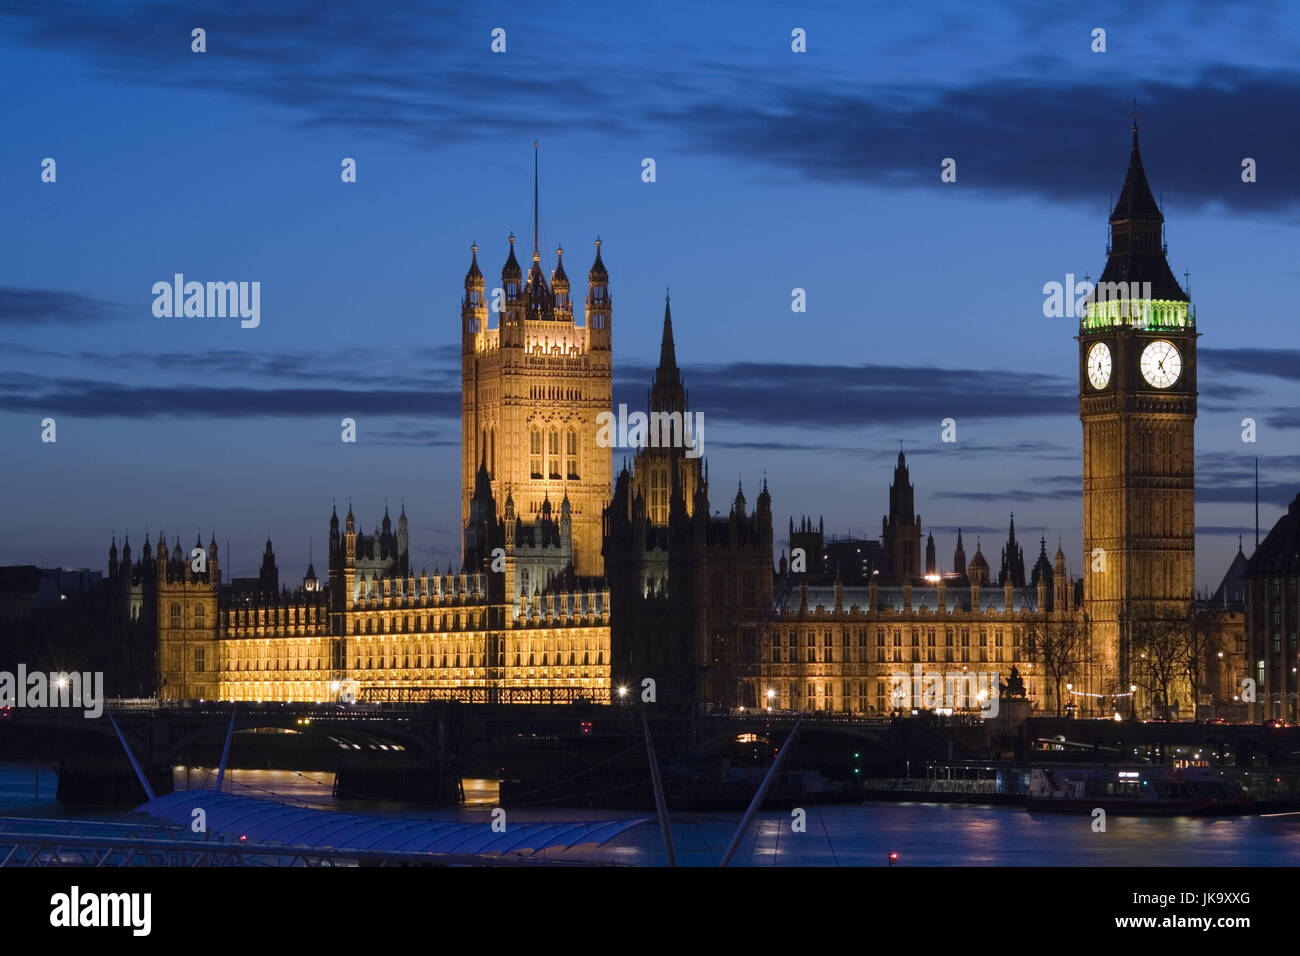 Großbritannien, England, London, Themse,  Houses of Parliament, Big Ben, beleuchtet,  Abend  Europa, Stadt, - Stock Image